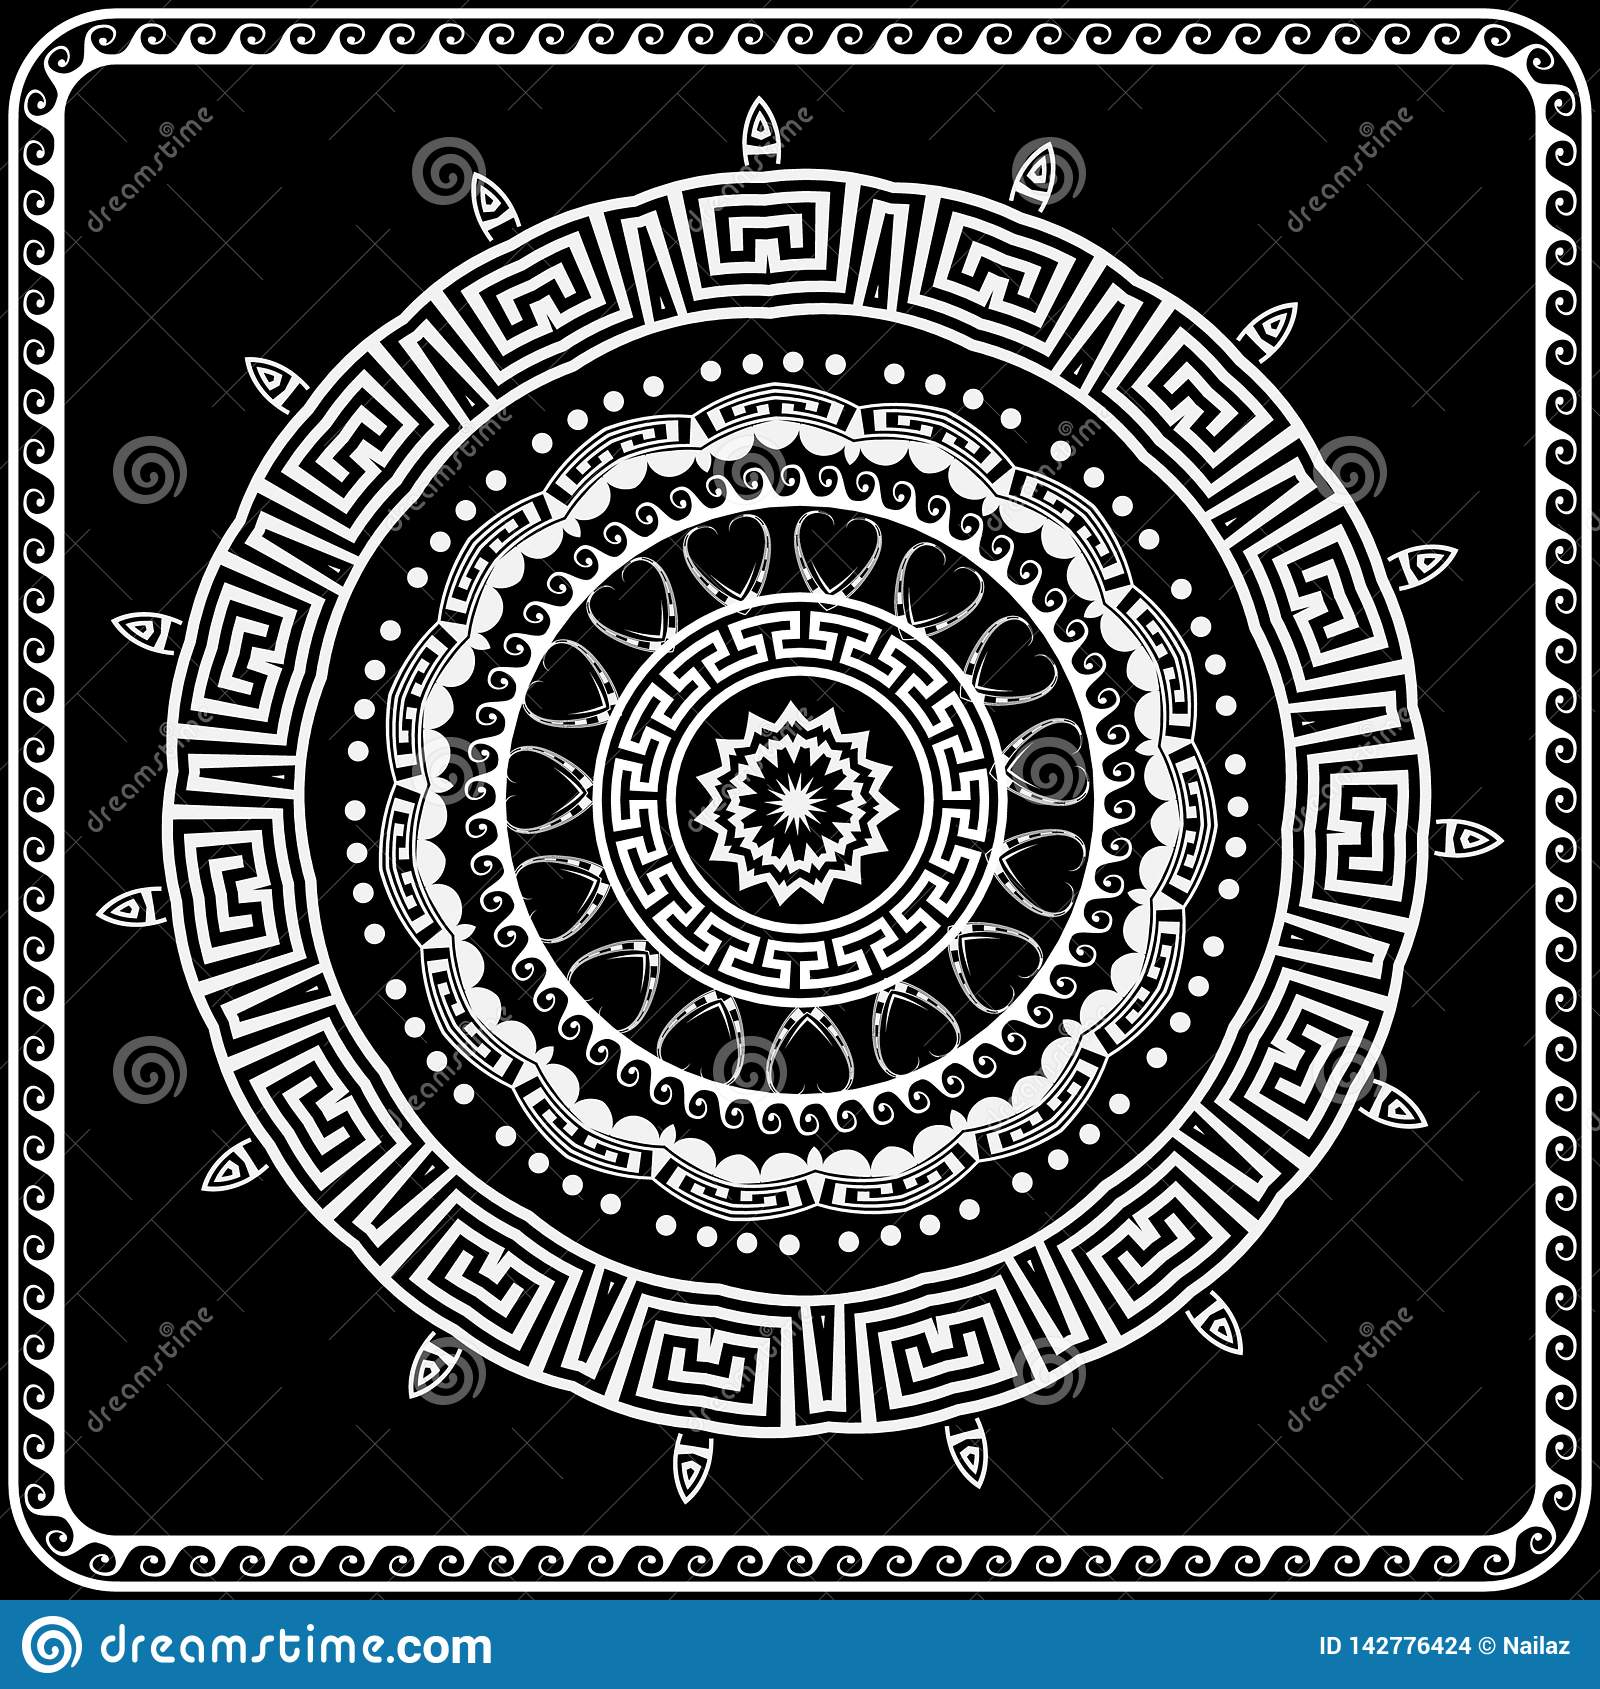 Greek round vector mandala pattern. Black and white greek key meanders ornament with geometric shapes, wave lines, frame, dots.